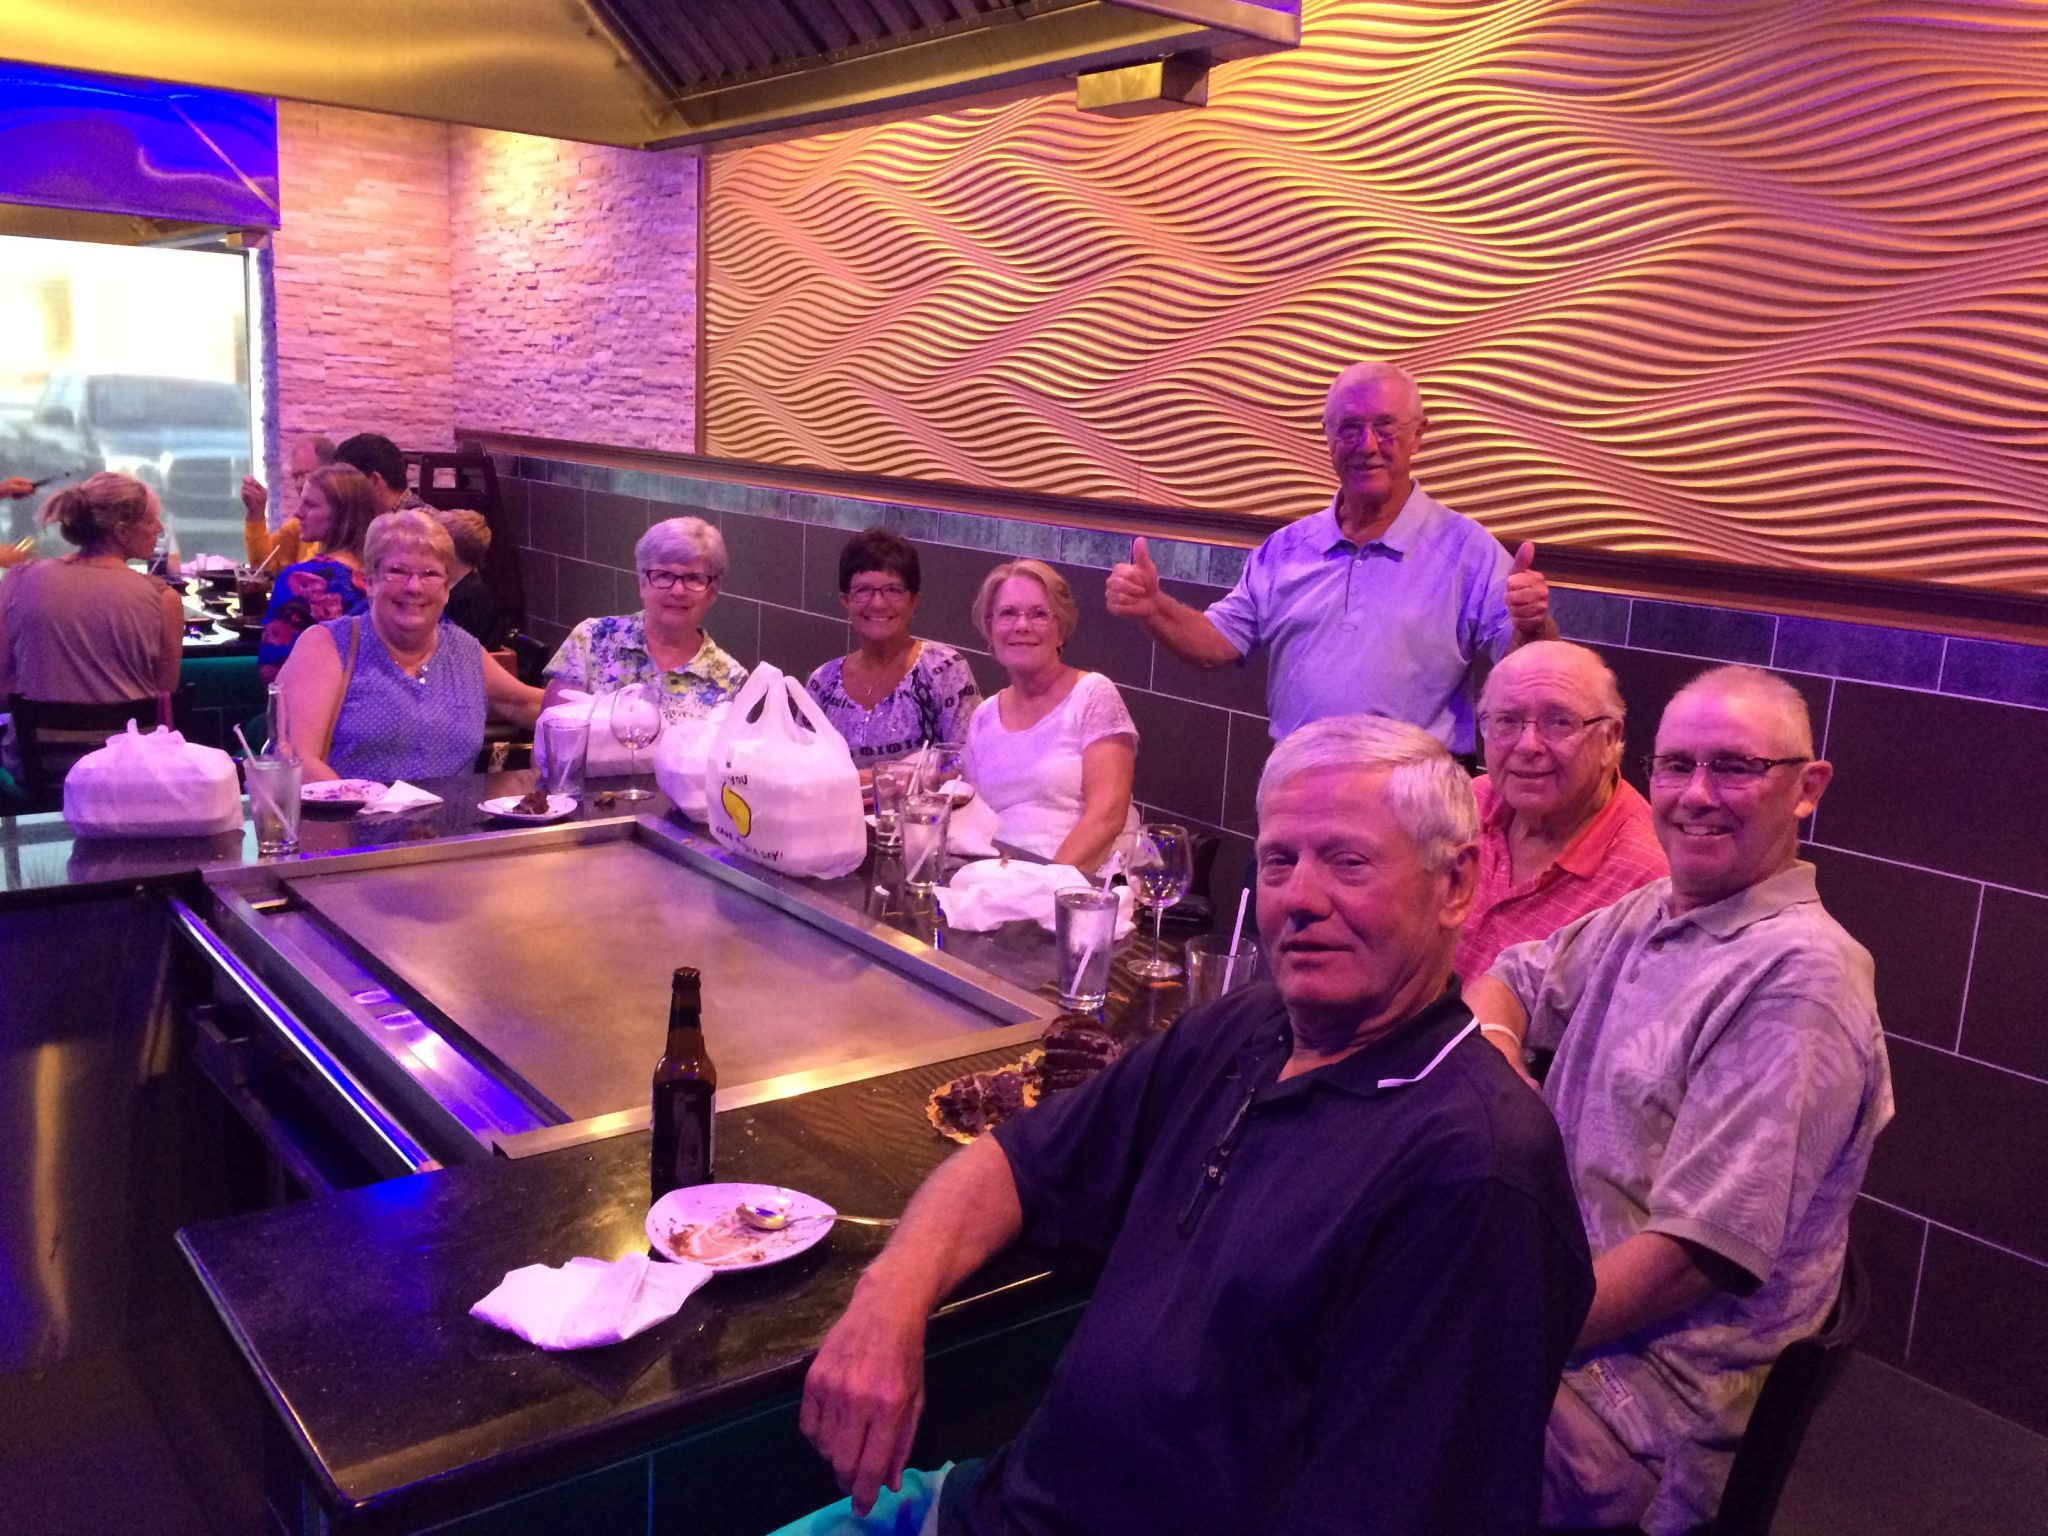 Enjoying an evening at Edo's Japanese Steakhouse.  What a handsome group!